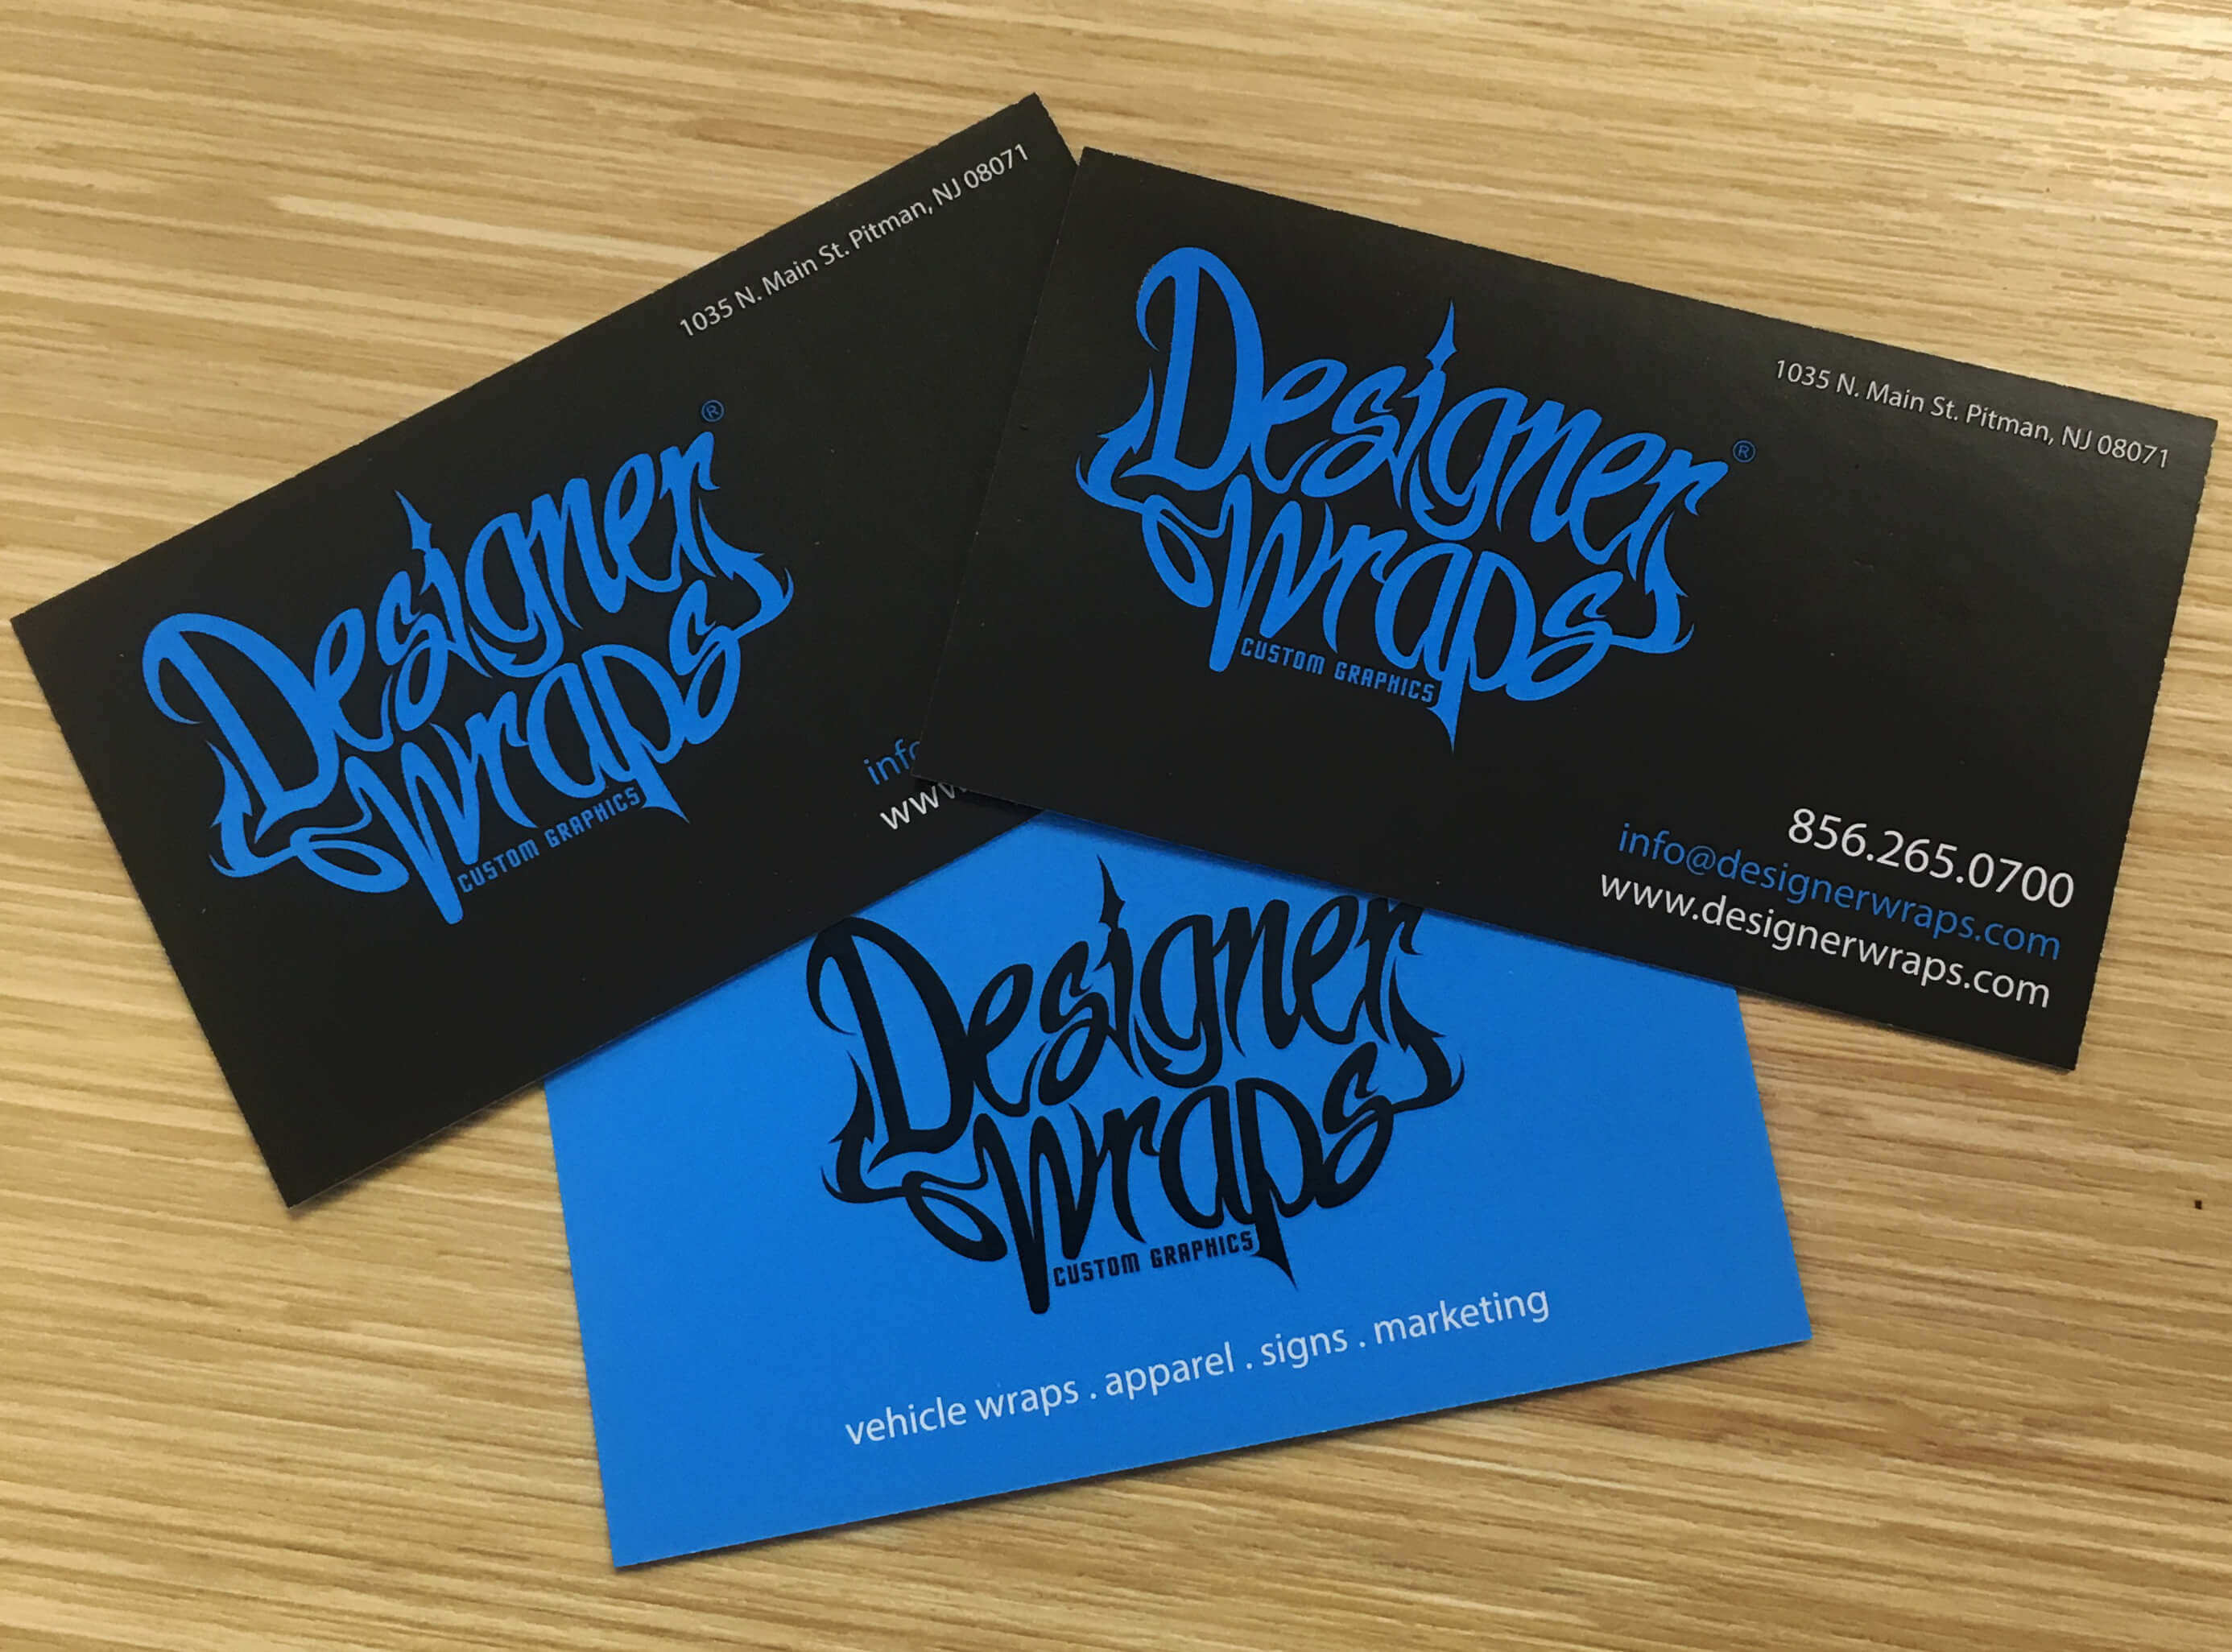 3 reasons business cards are still important designer wraps